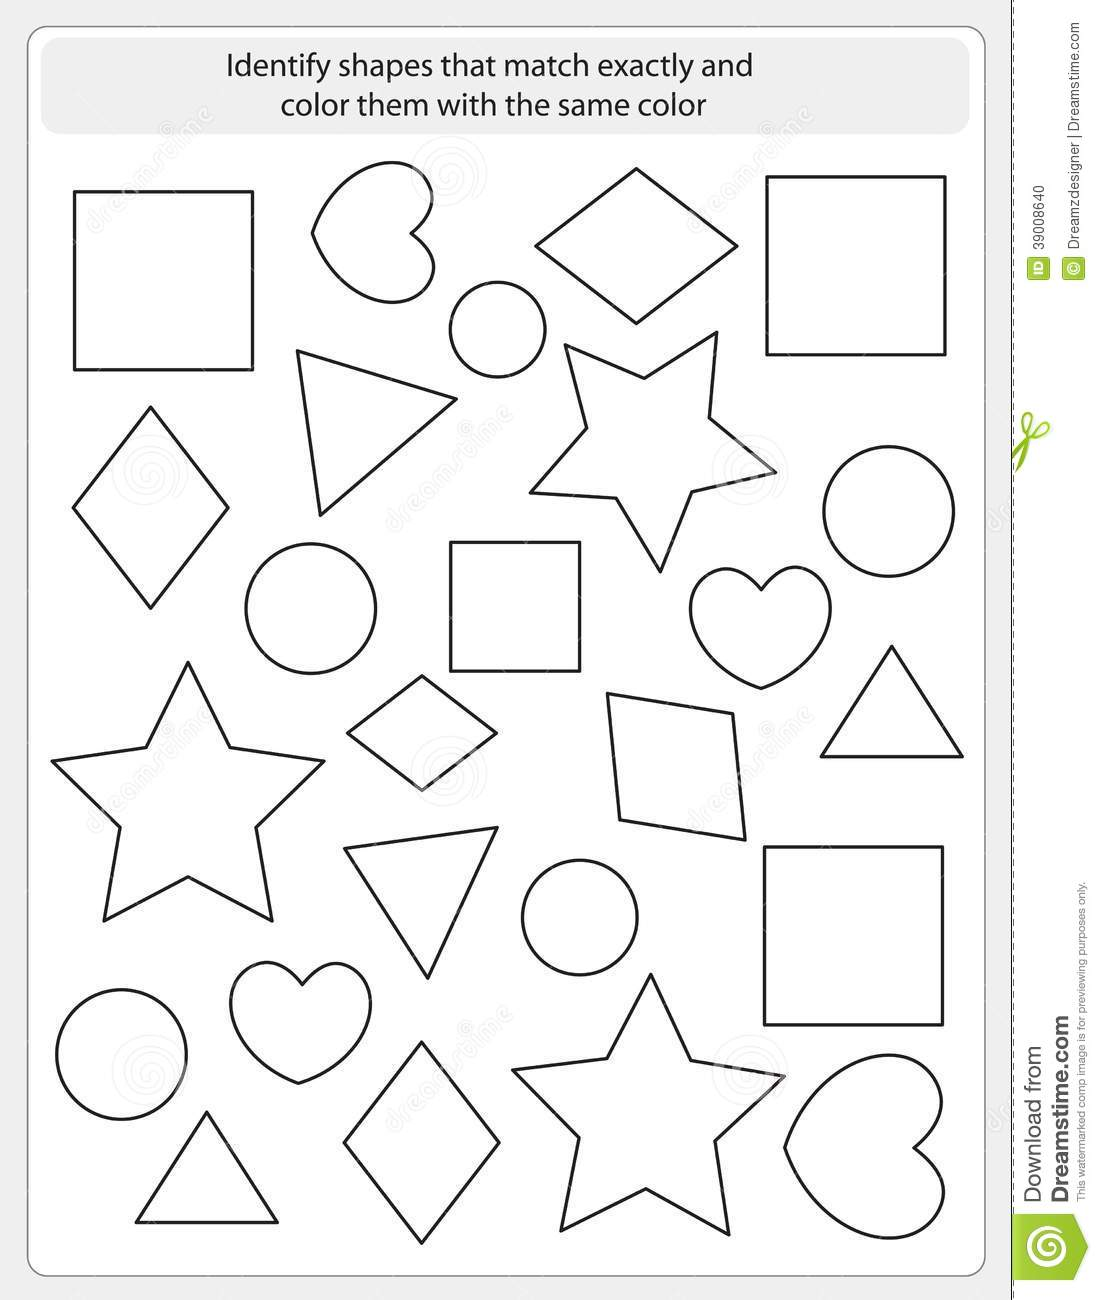 worksheet Identify Shapes Worksheet shapes to color coloring shape and colors worksheet sheet